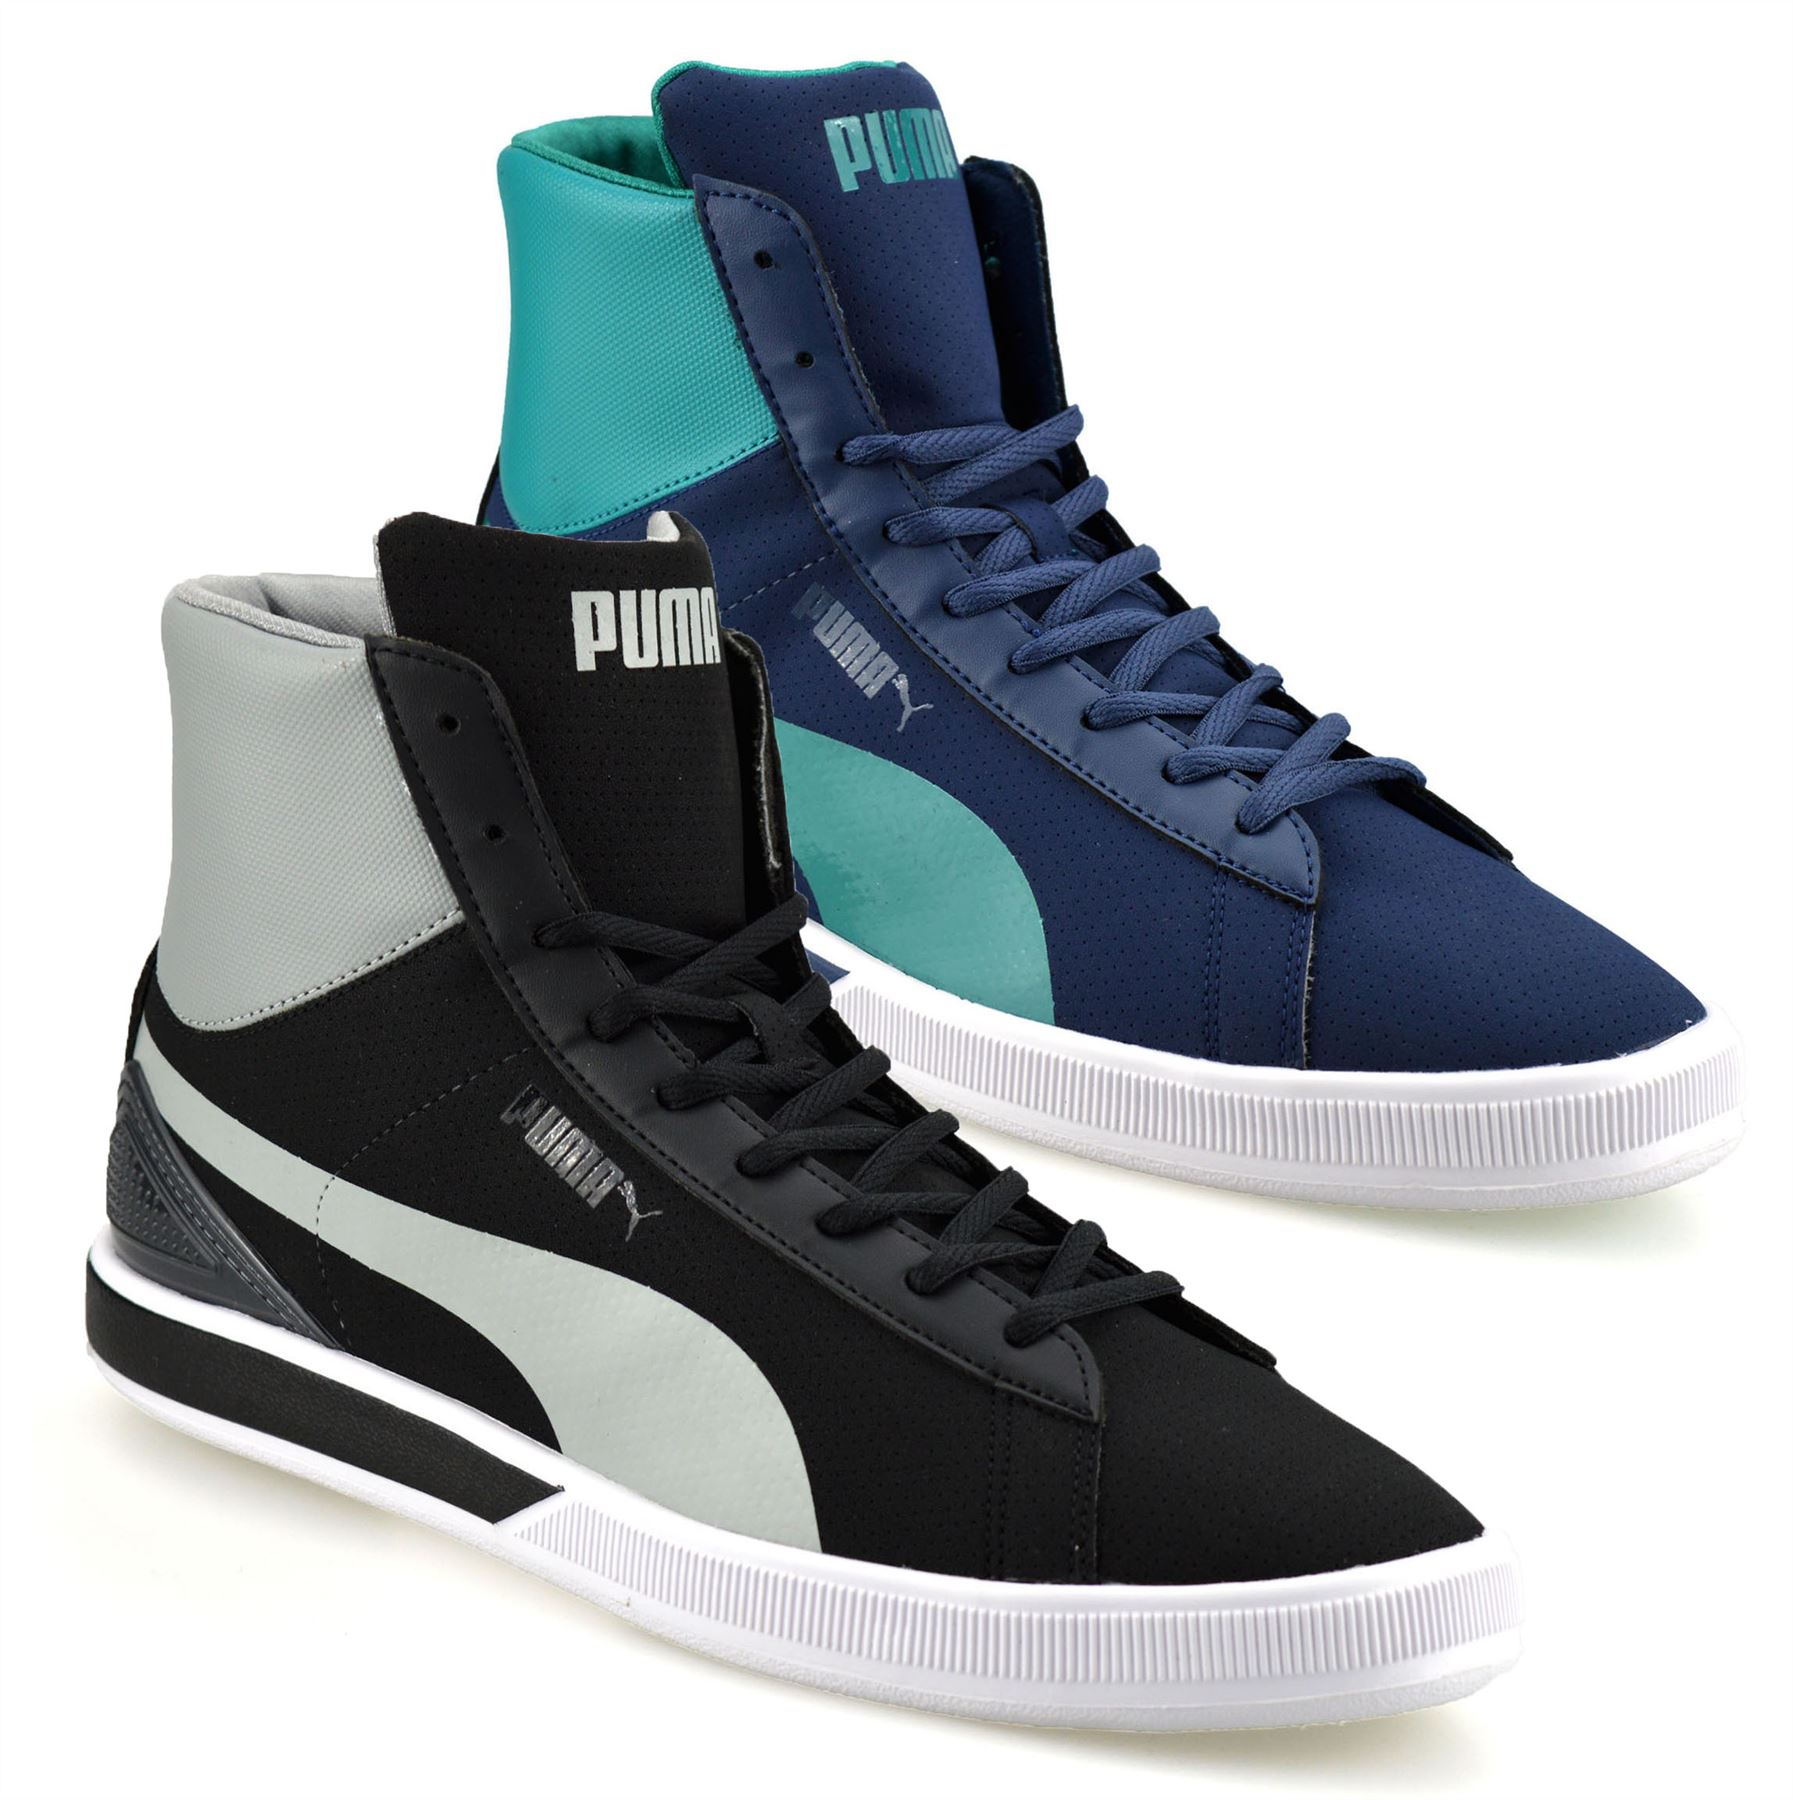 395dc891ee23 Details about Mens Puma Future Mid Ankle Boots Hi Tops Skate Basketball  Trainers Shoes Size